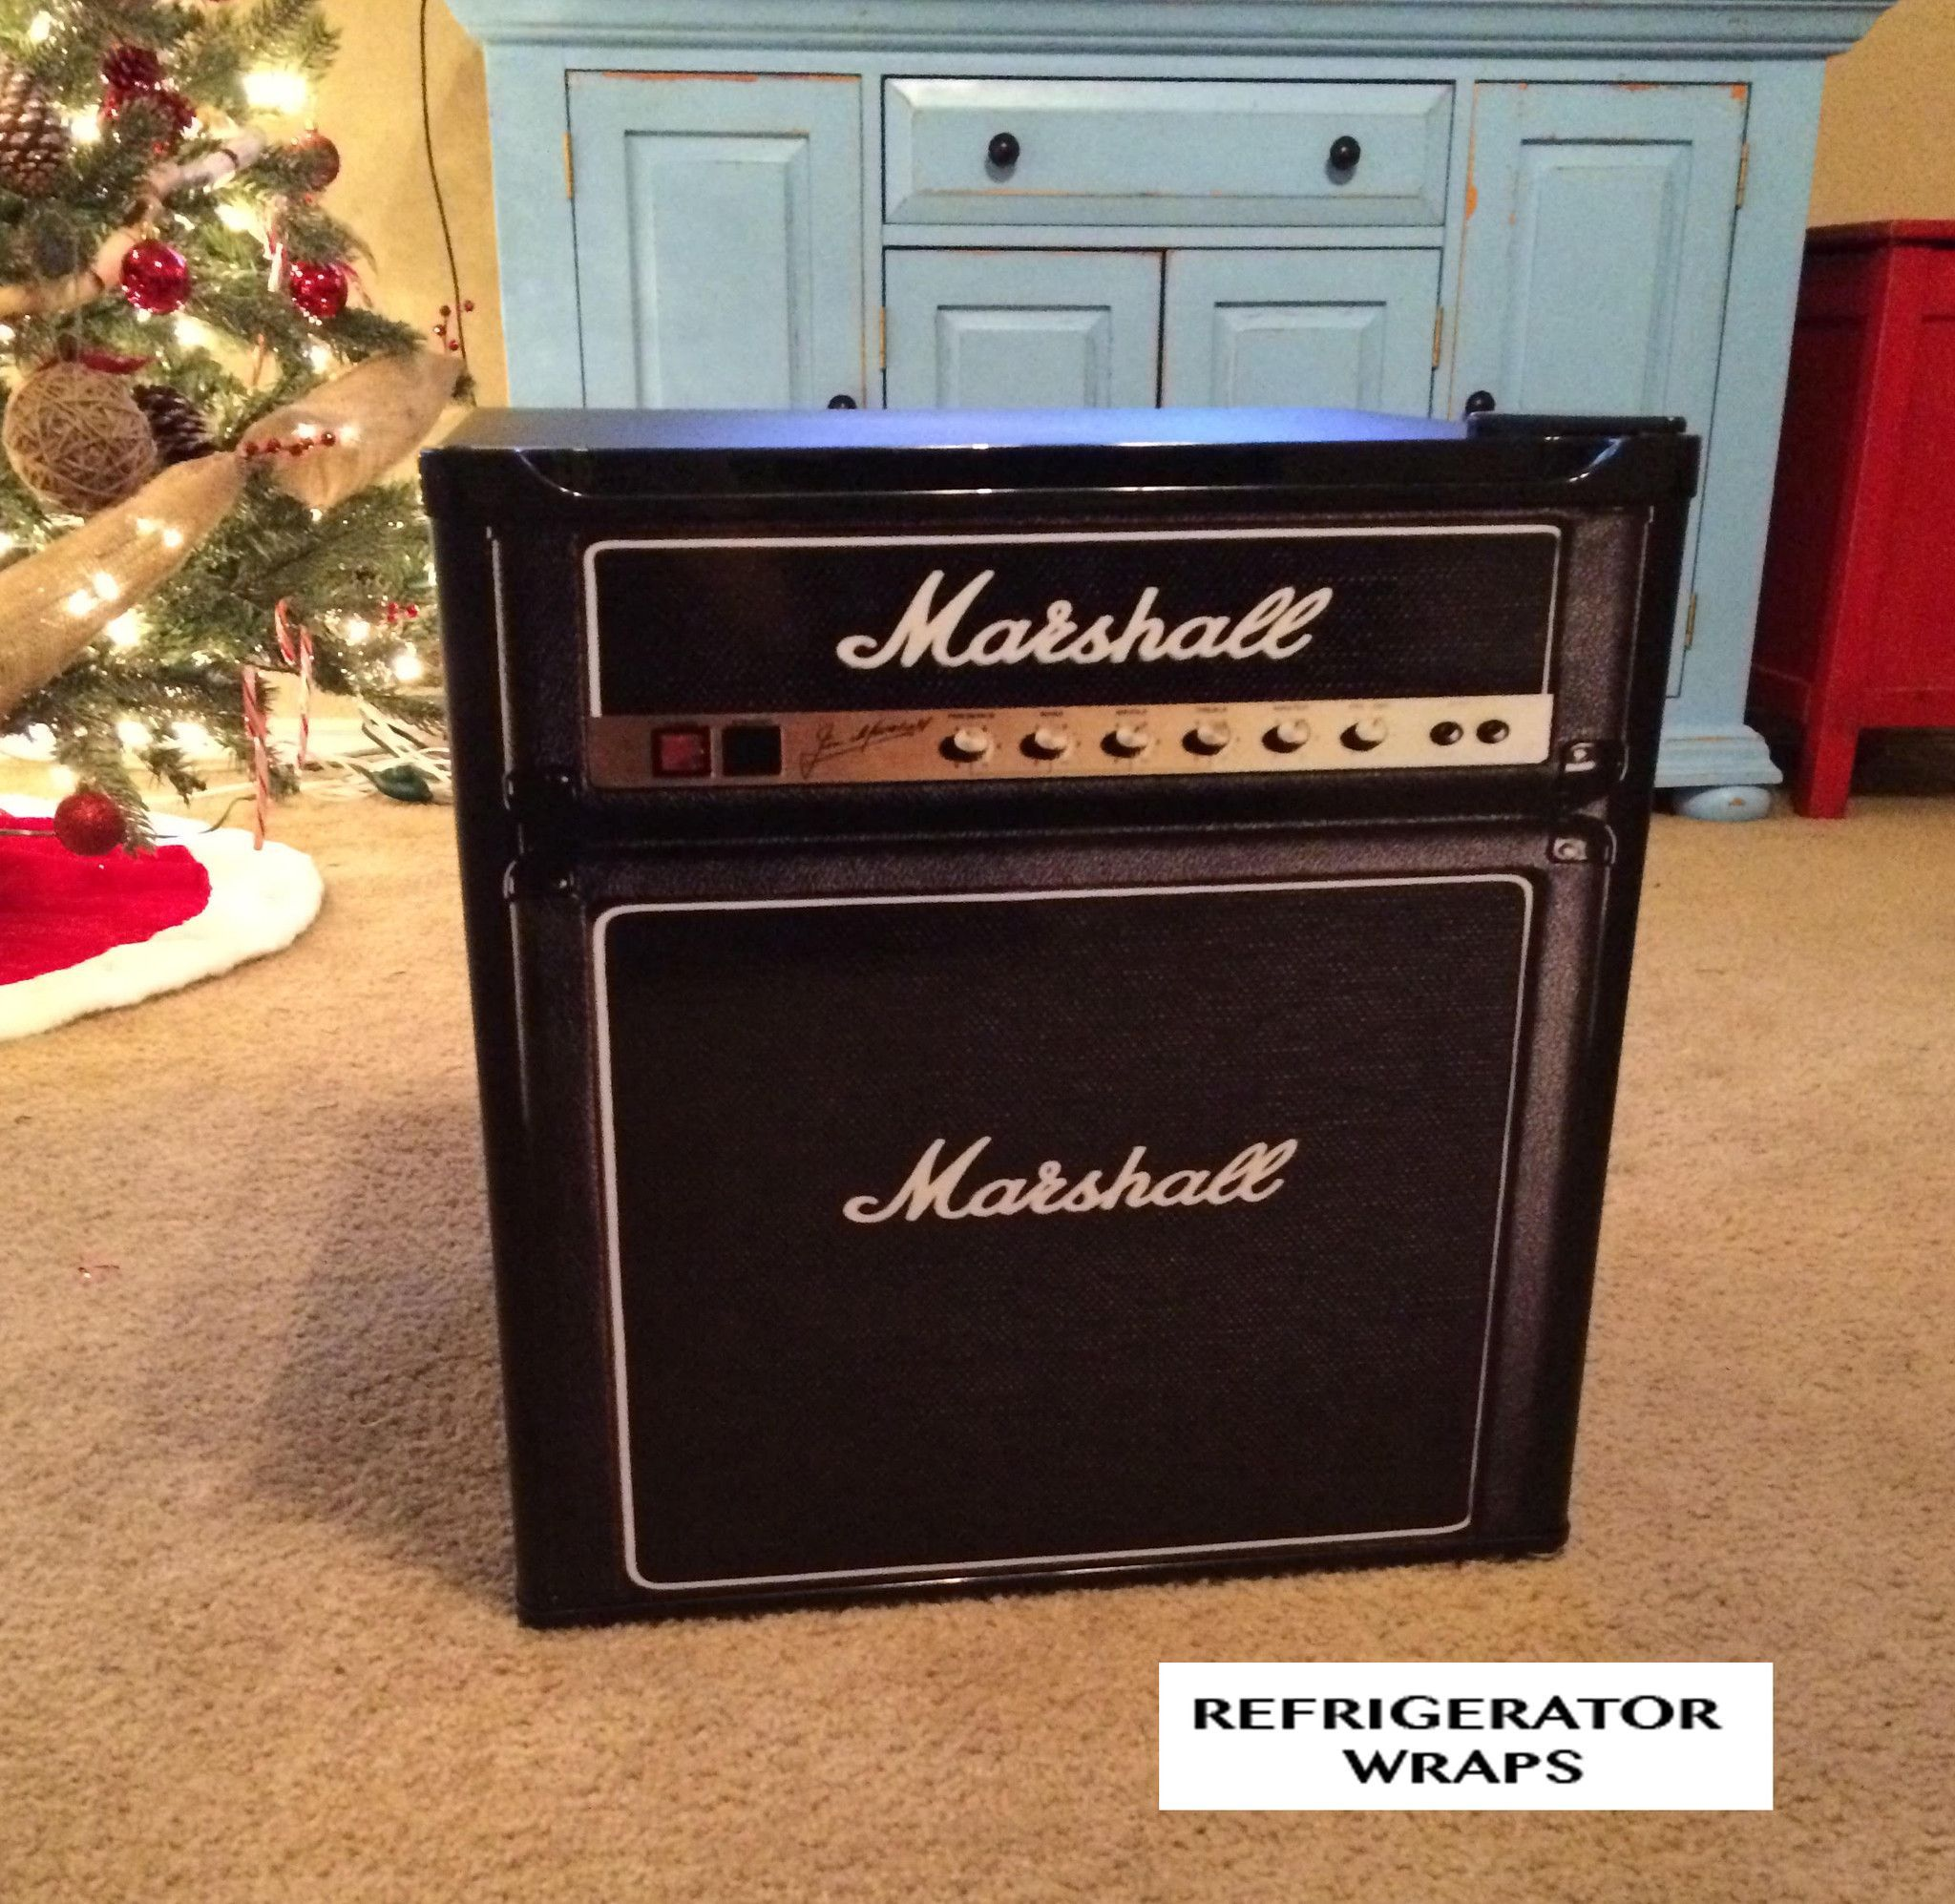 Home for the home marshall fridge - Marshall Amp Mini Fridge Front Wrap Sticker Add Your Own Name On The Front Amp